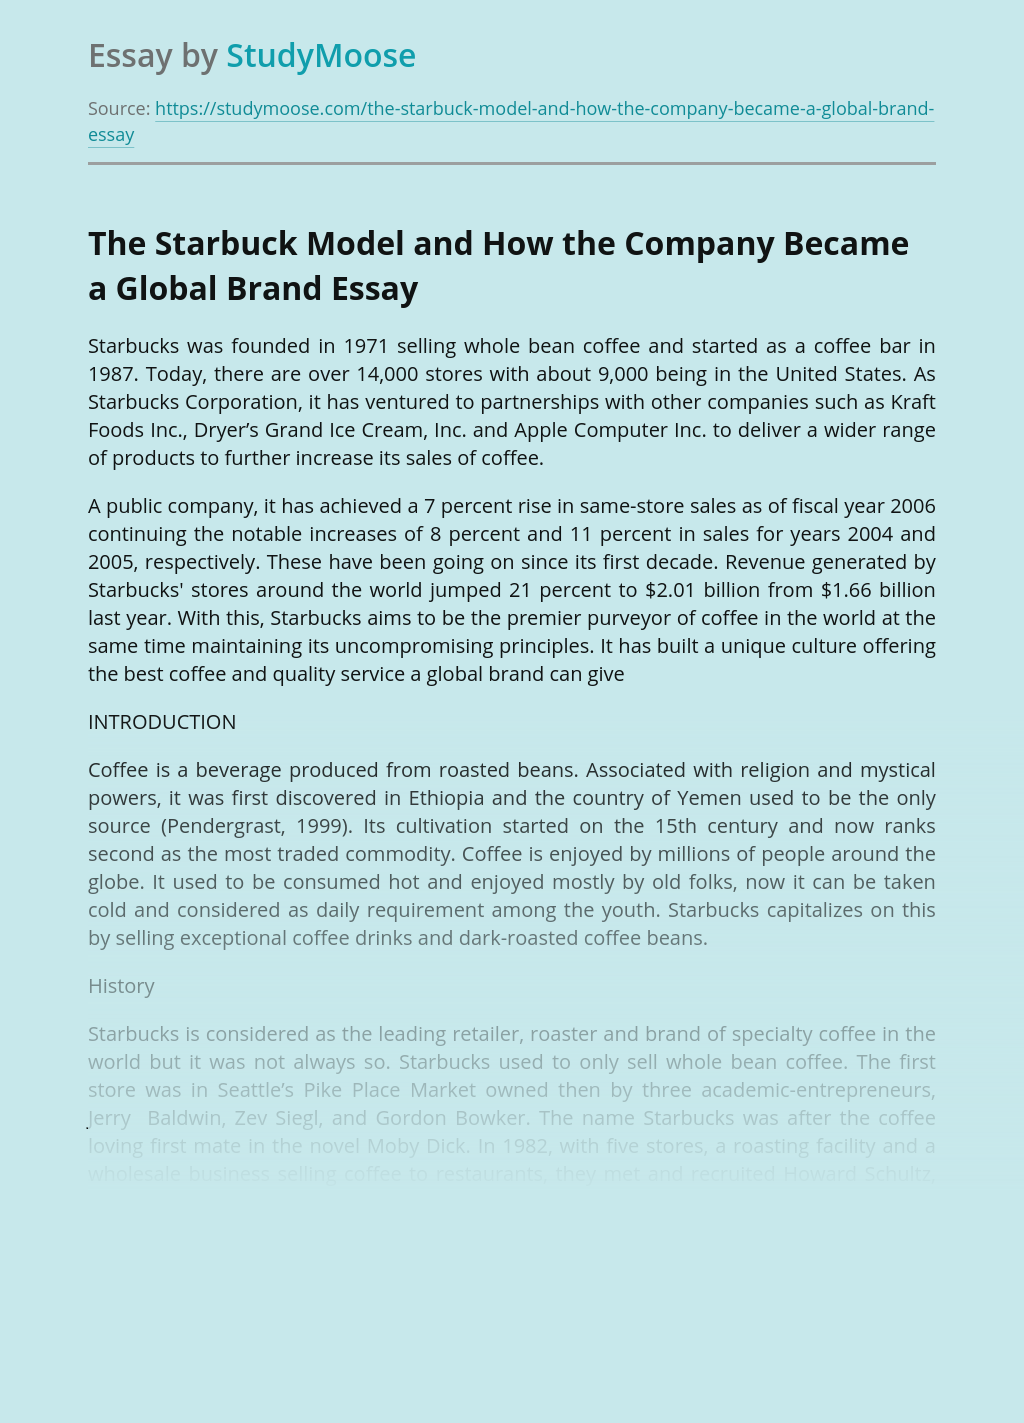 The Starbuck Model and How  the Company Became a Global Brand